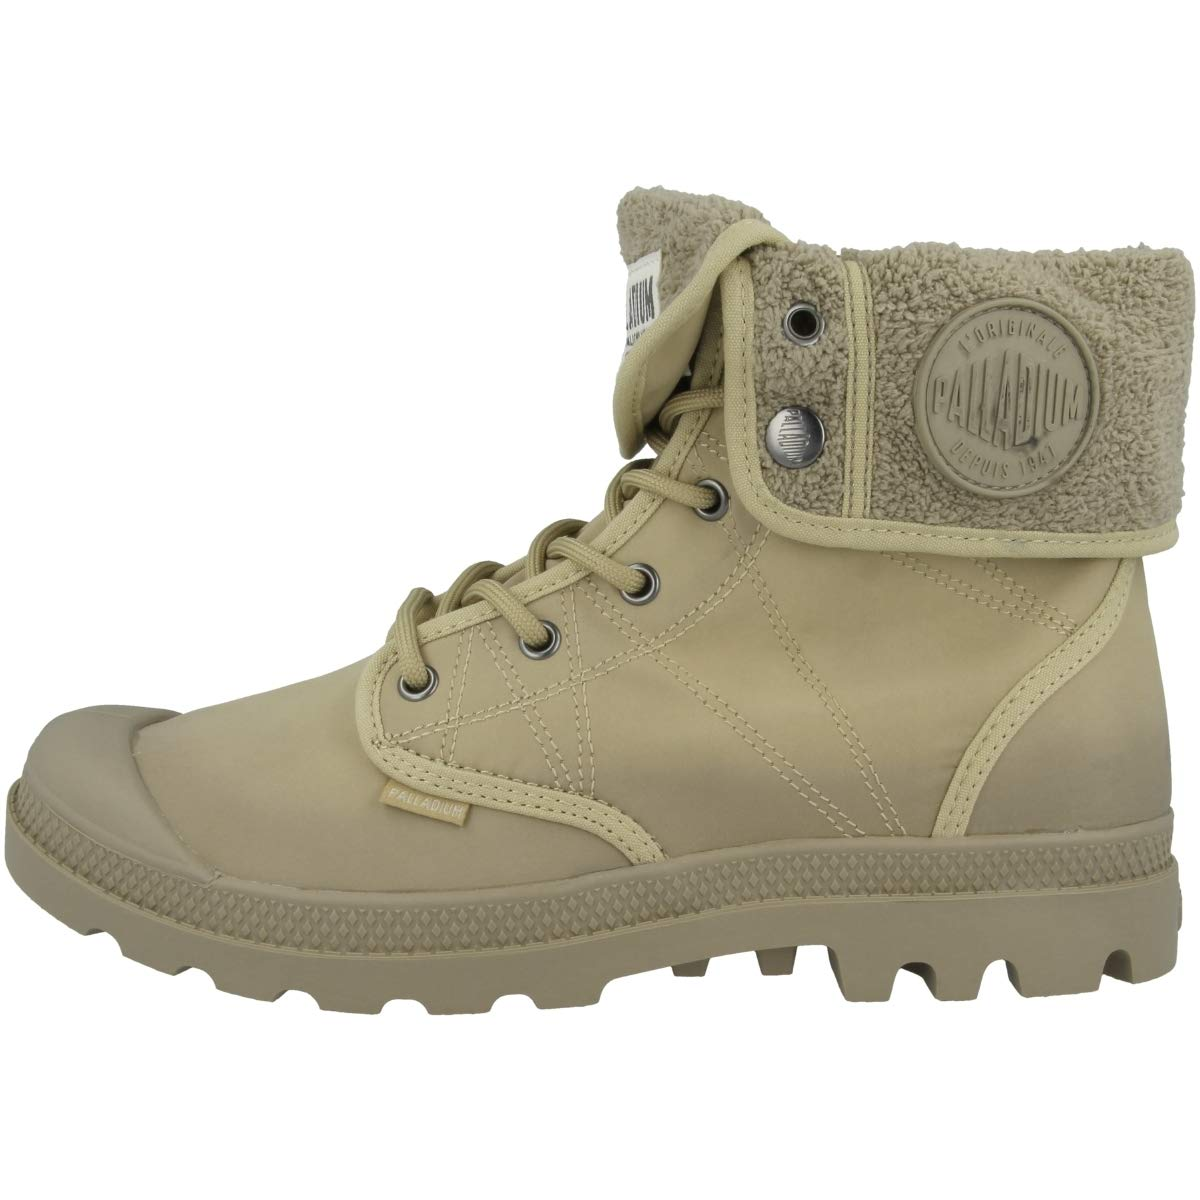 Palladium Unisex Pallabrousse Baggy Baggy Baggy TX Stiefel 395551